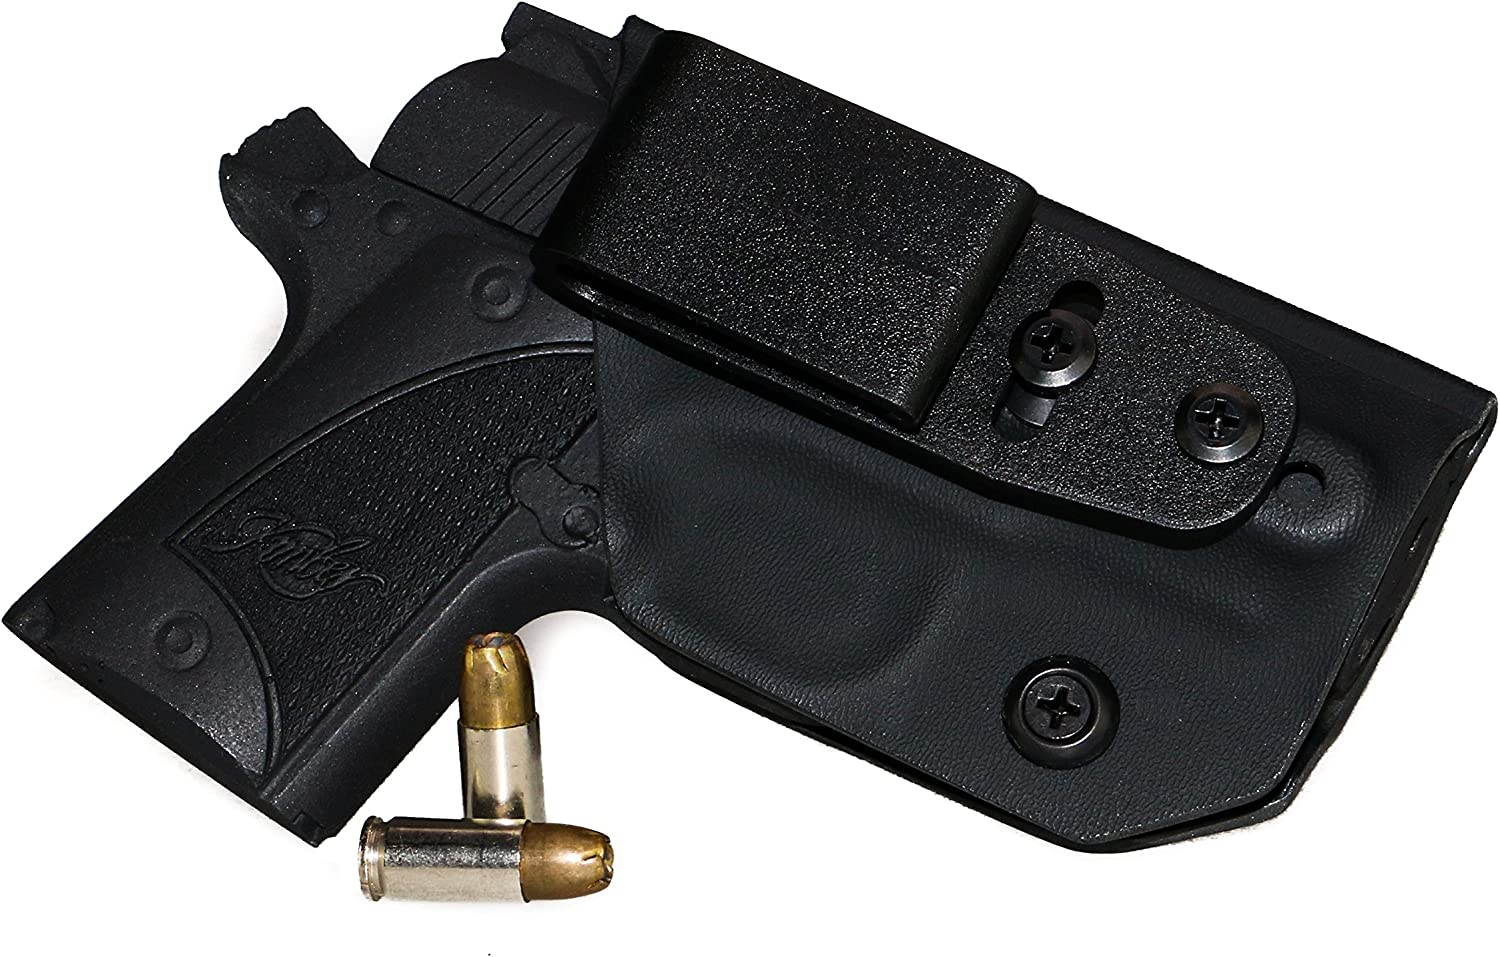 Nylon side holster for Kimber Micro 9 with crimson trace laser